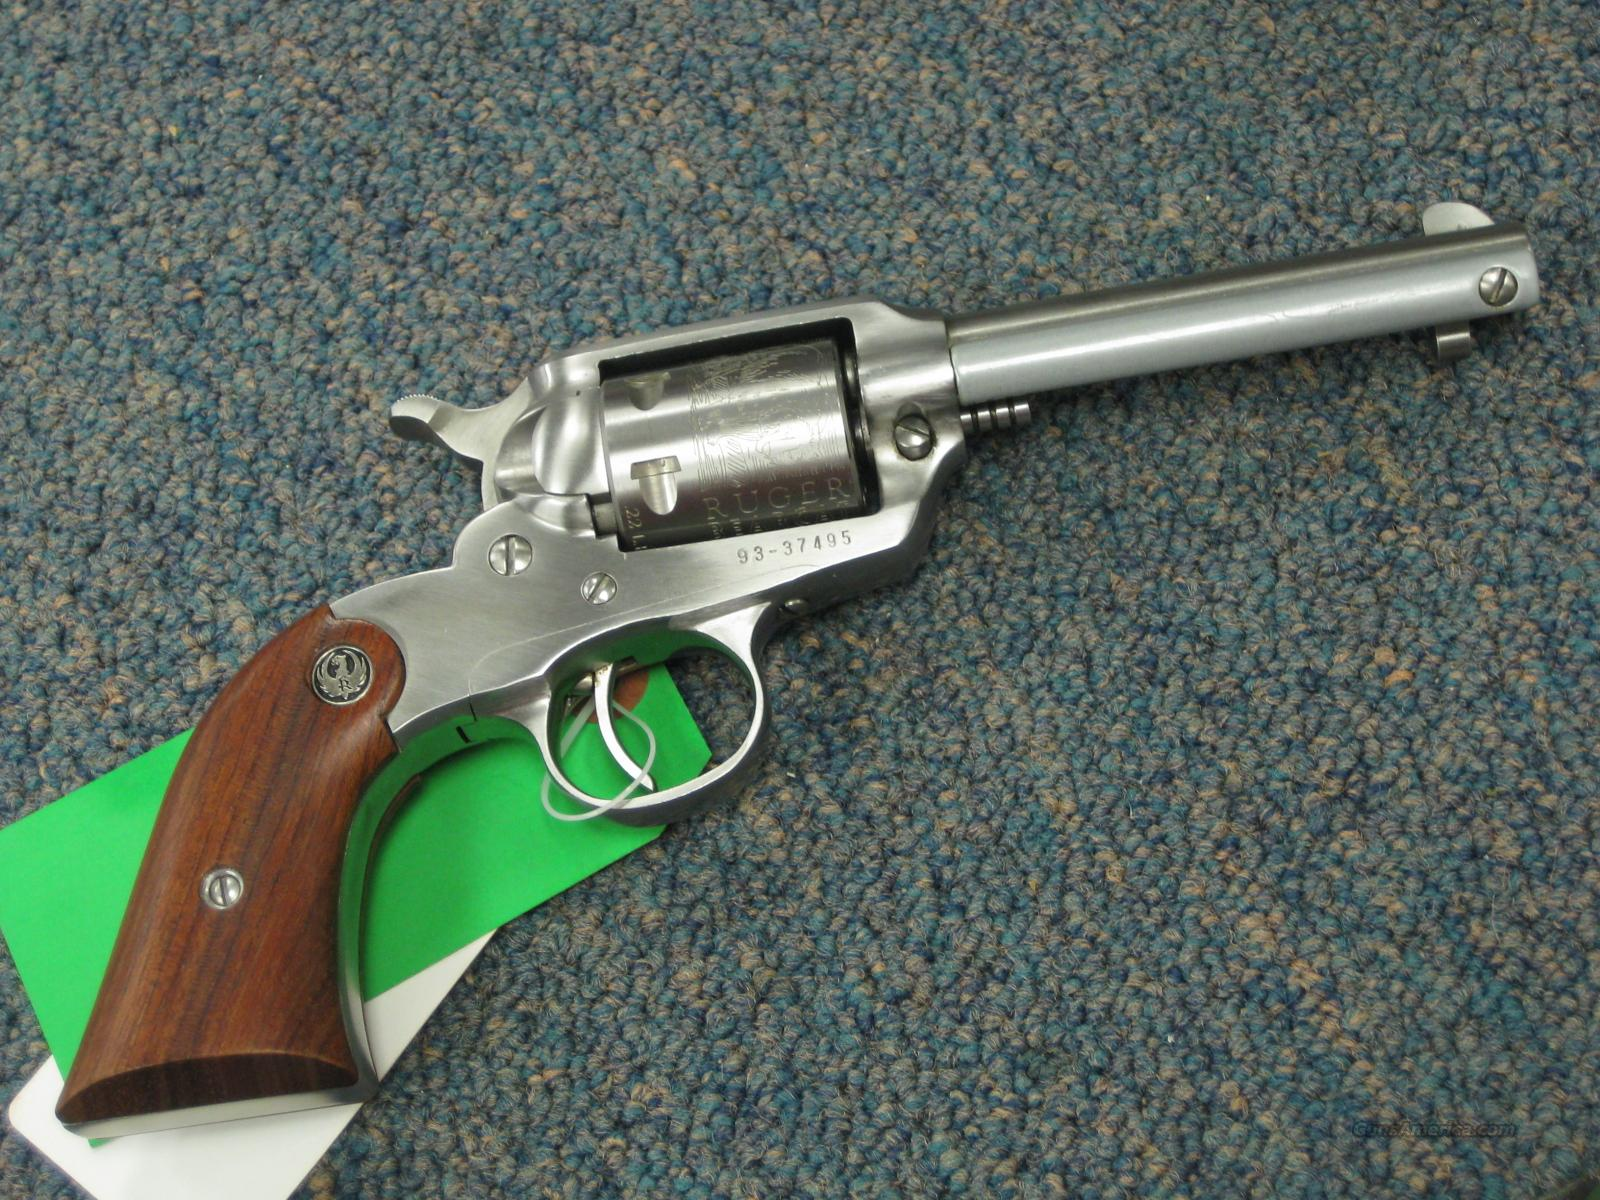 RUGER NEW BEARCAT .22LR - STAINLESS - NEAR NEW !  Guns > Pistols > Ruger Single Action Revolvers > Single Six Type